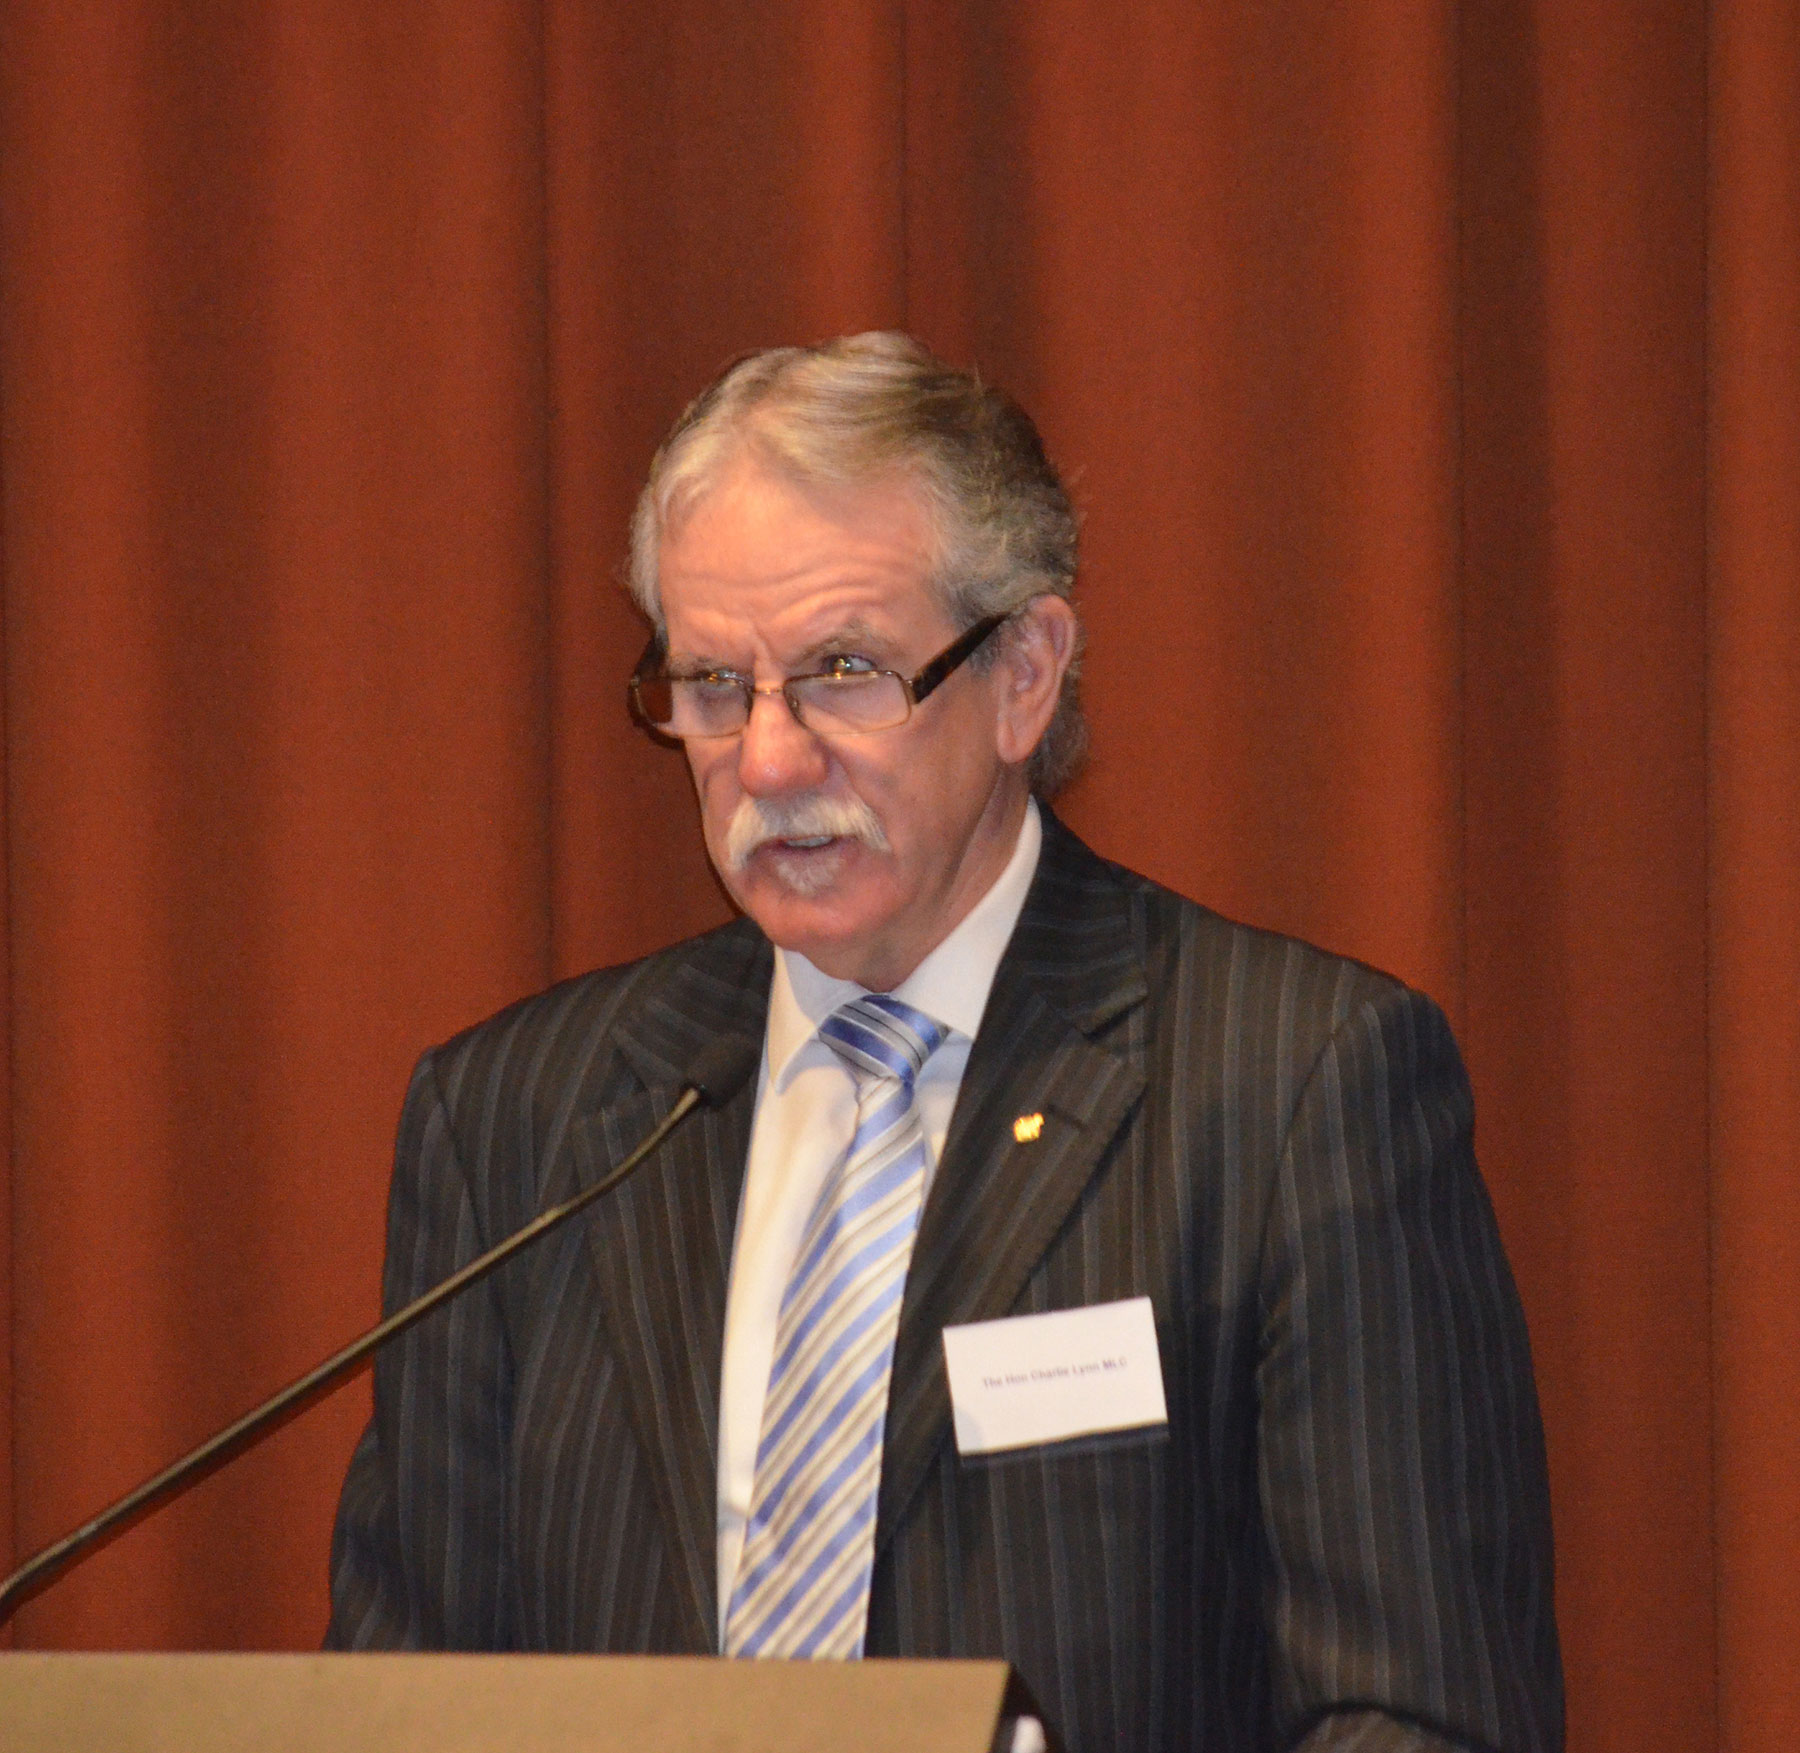 03 Symposium 6th Dec 2012. Charlie Lynn Mlc